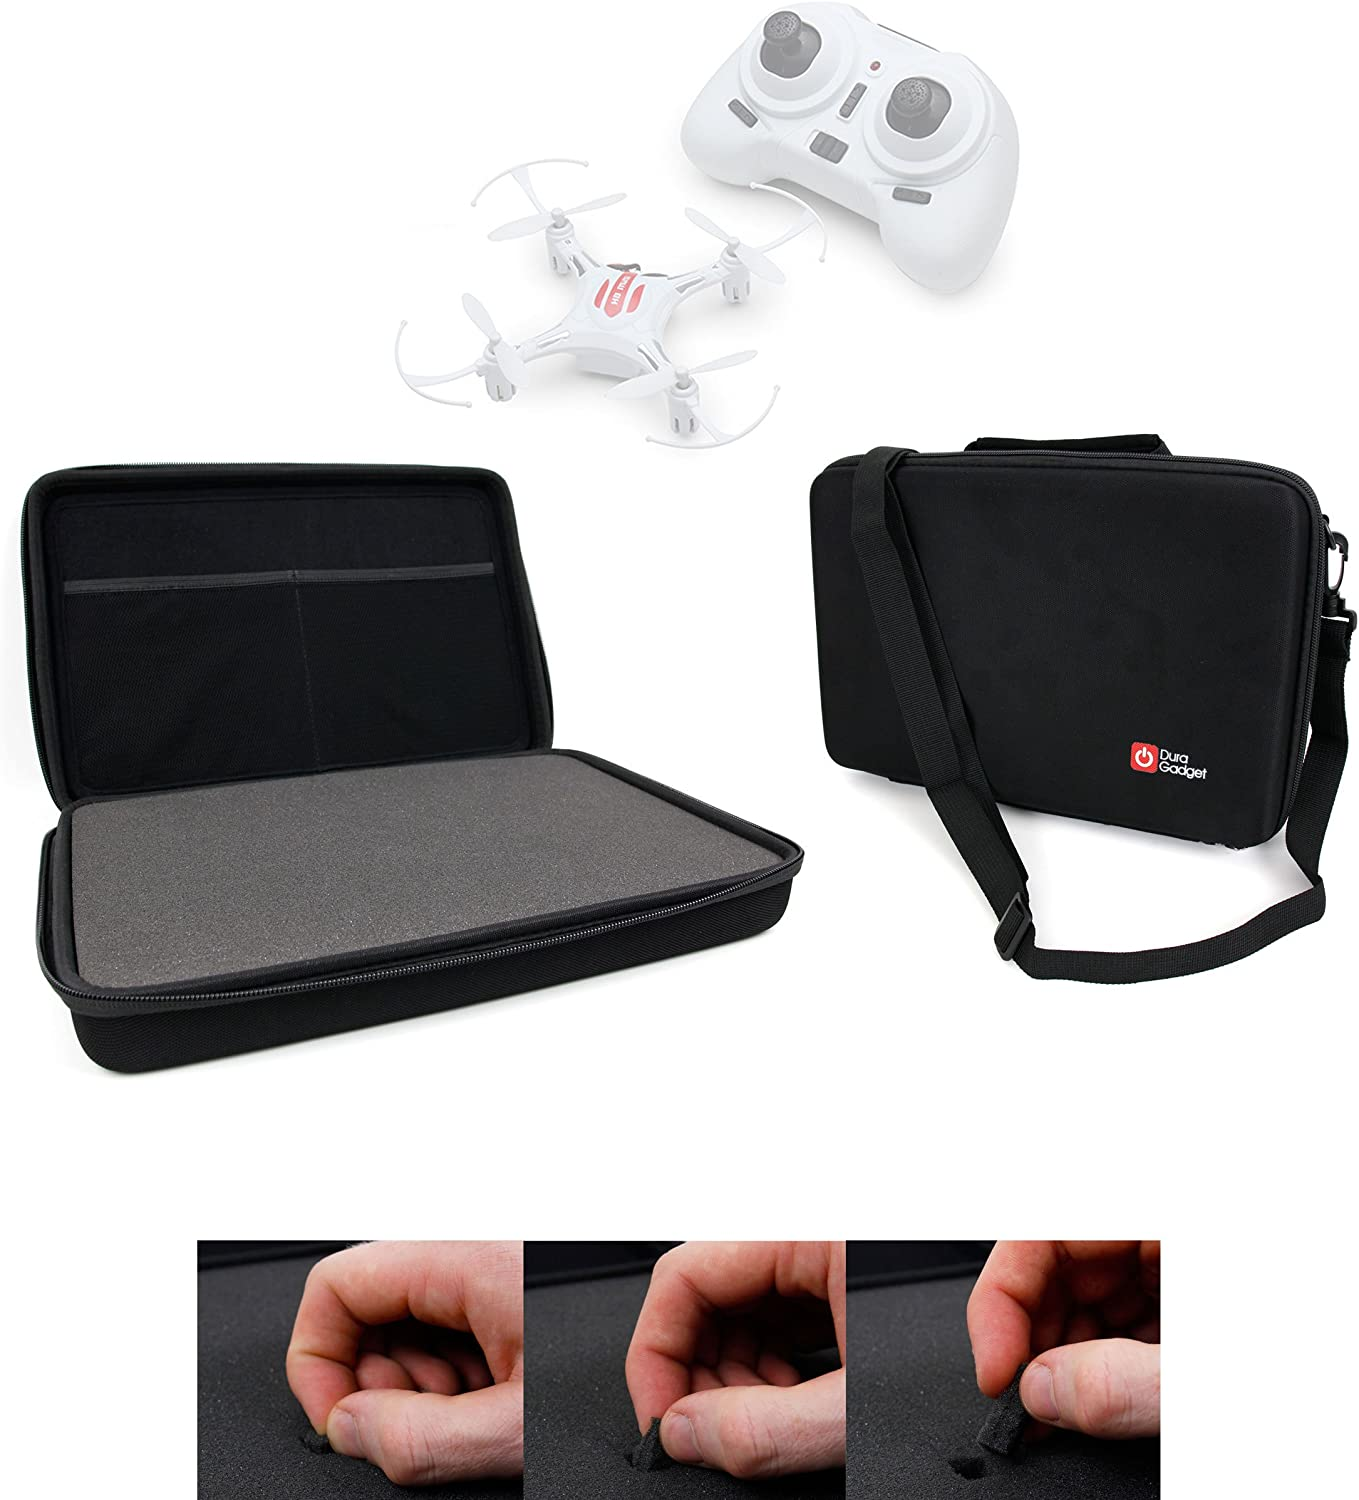 E10C Mini Quadcopter Drone DURAGADGET Black Armoured EVA Shell Storage Case with Fully-Customizable /& Shock-Absorbing D.I.Y Foam Interior Compatible with The Eachine H8